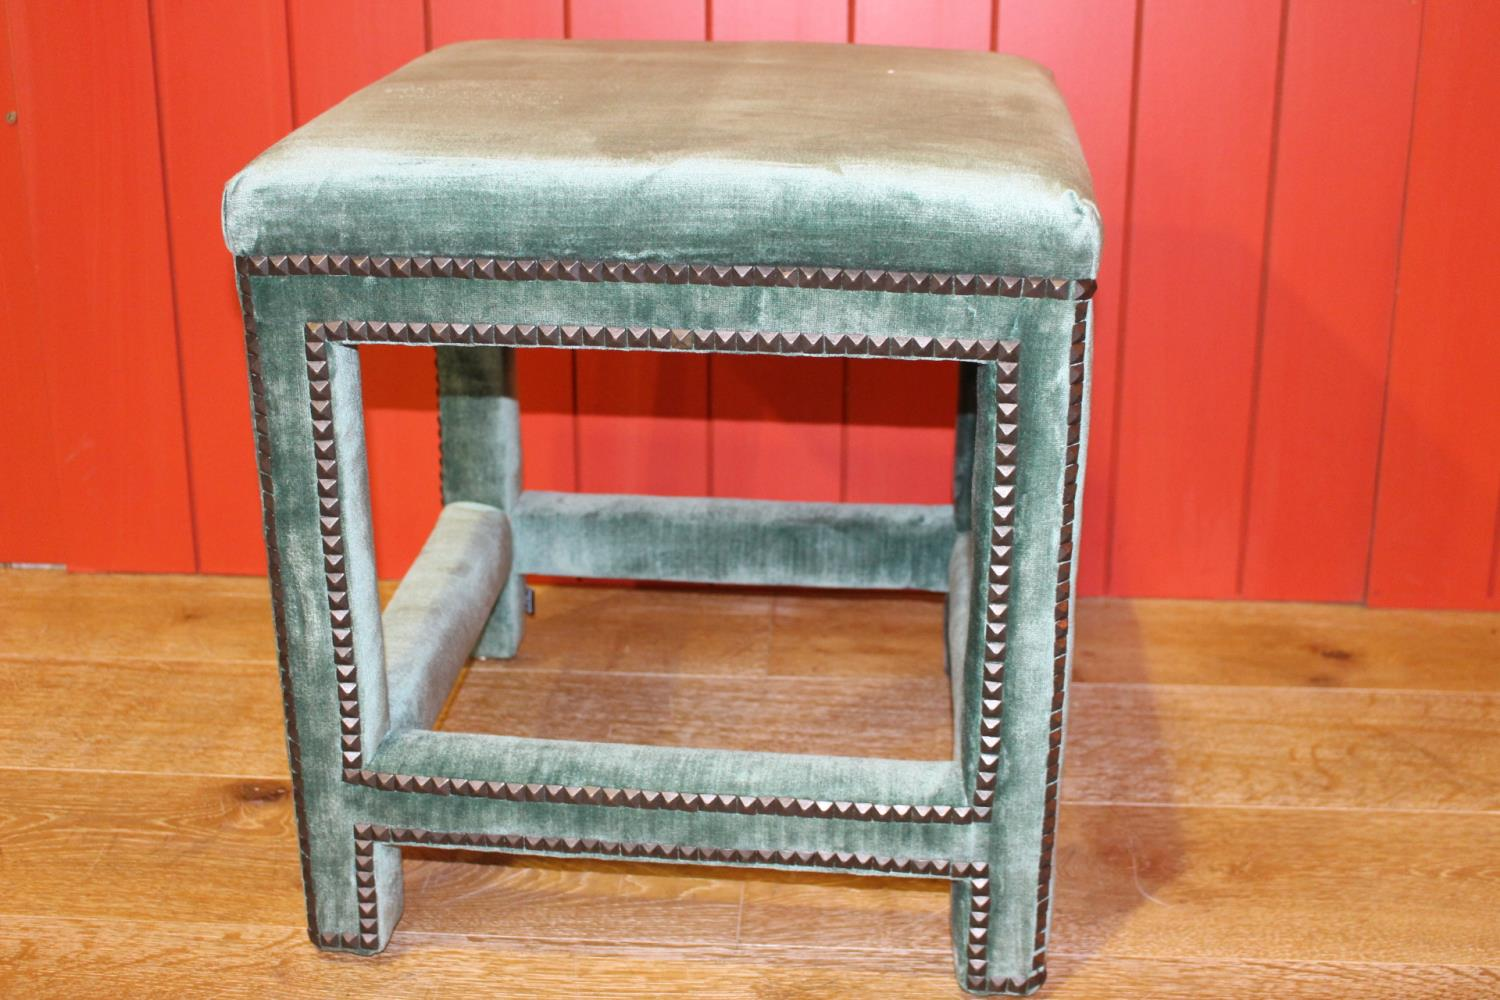 Upholstered low stool.